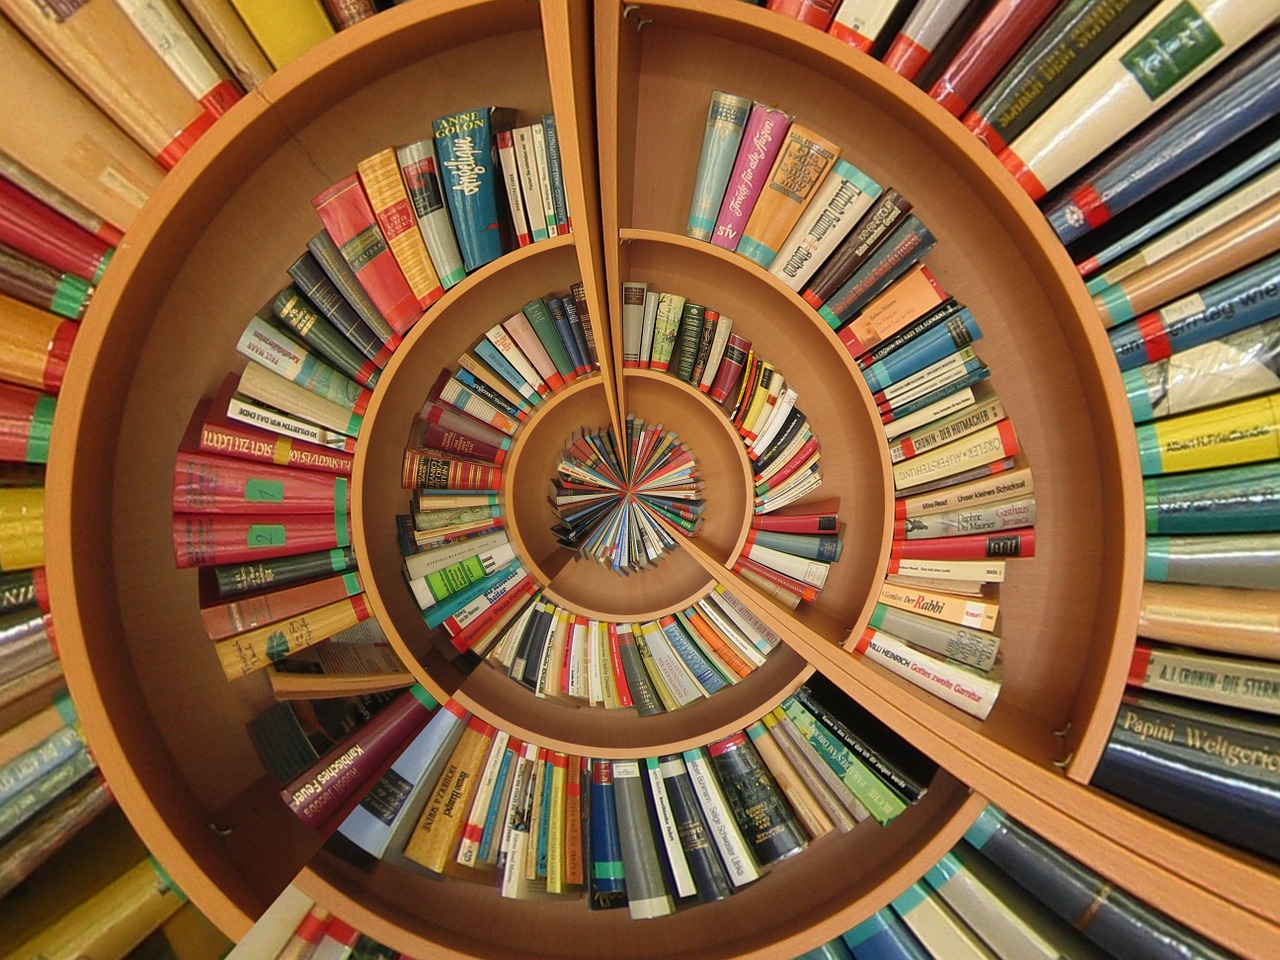 Decorative - Spiral of Books